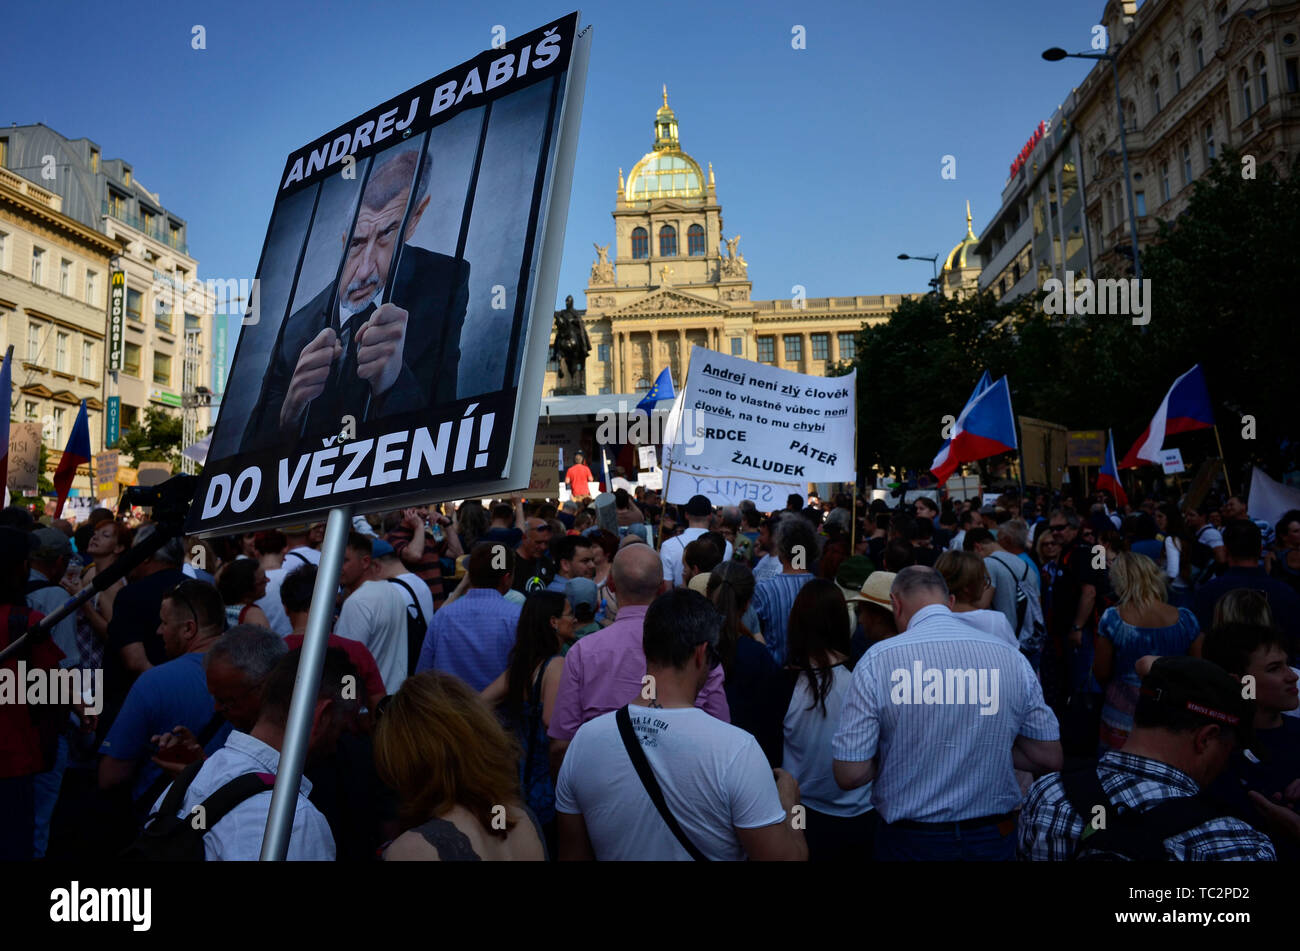 04 June 2019, Czechia, Prag: Demonstrators hold signs in protest against Babis, the head of government. At one of the largest demonstrations since the democratic change of 1989 tens of thousands of demonstrators filled the central Wenceslas Square in Prague on Tuesday evening (04.06.2019). They demanded the resignation of the politician. Babis is accused of having benefited unlawfully from EU subsidies for years as an entrepreneur. Photo: Michael Heitmann/dpa - Stock Image